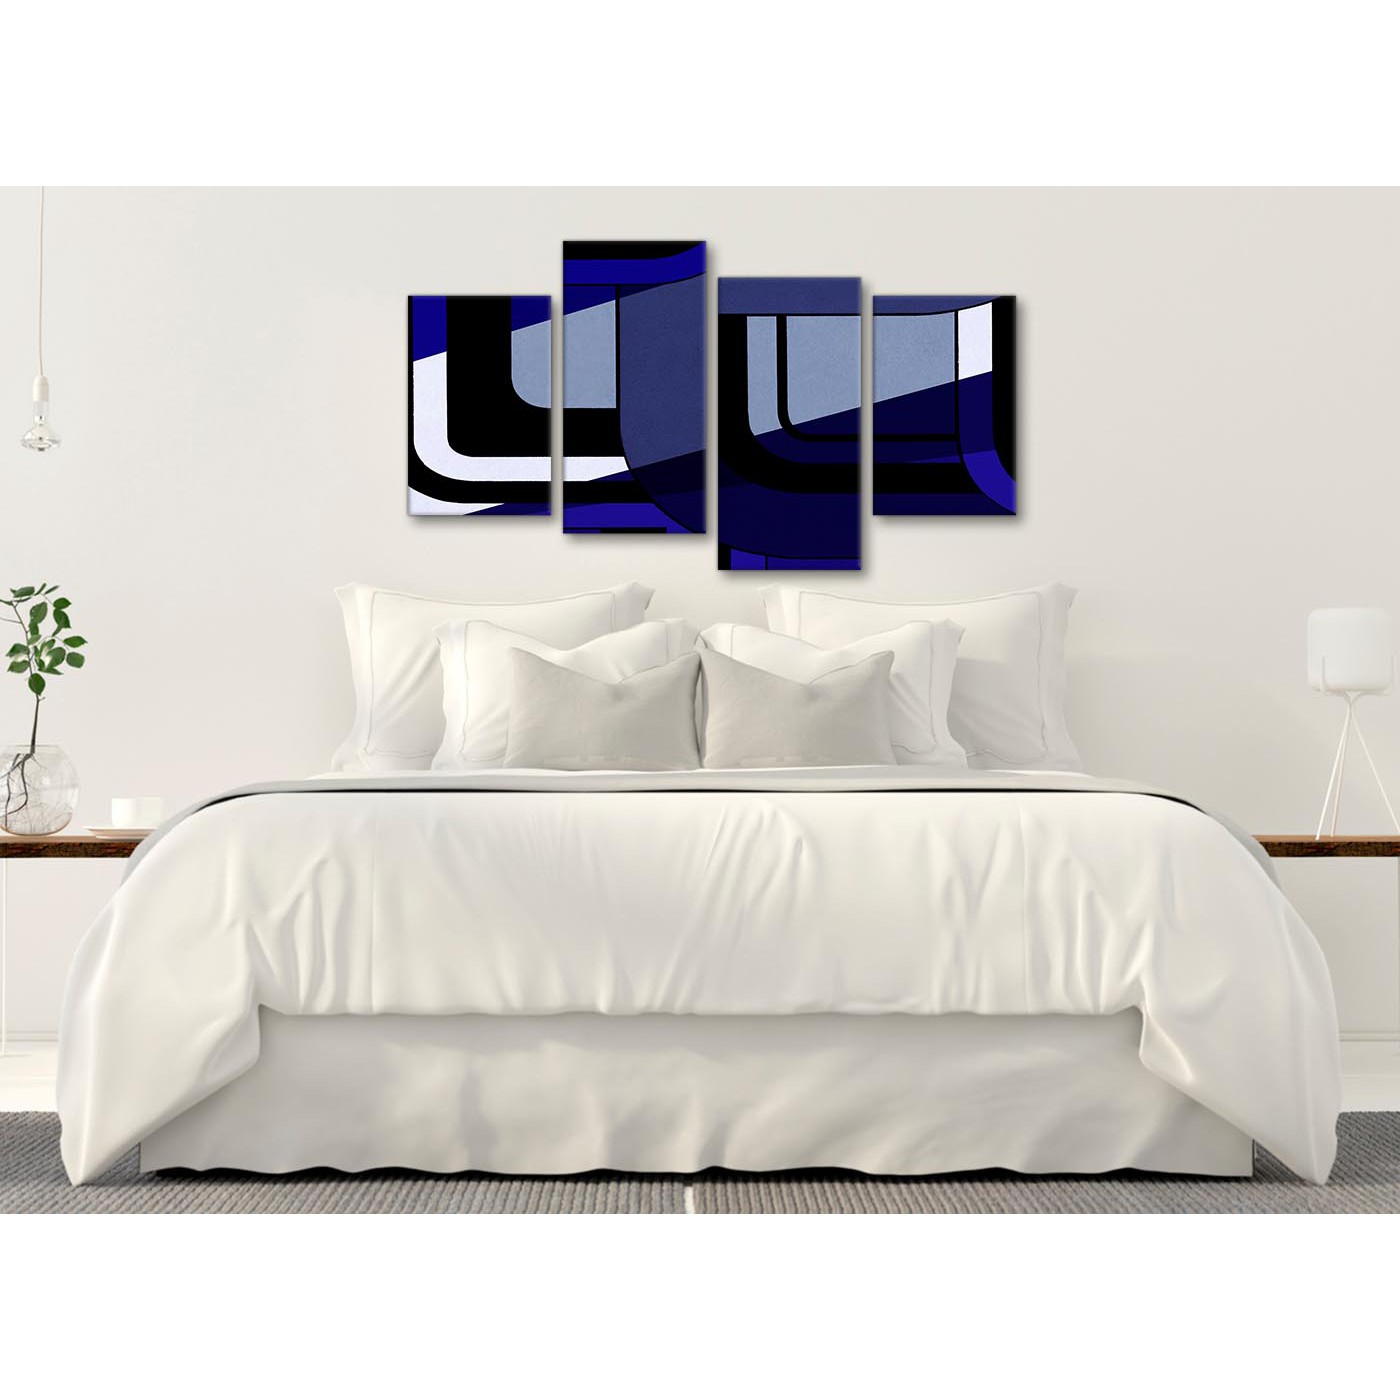 large indigo navy blue painting abstract bedroom canvas